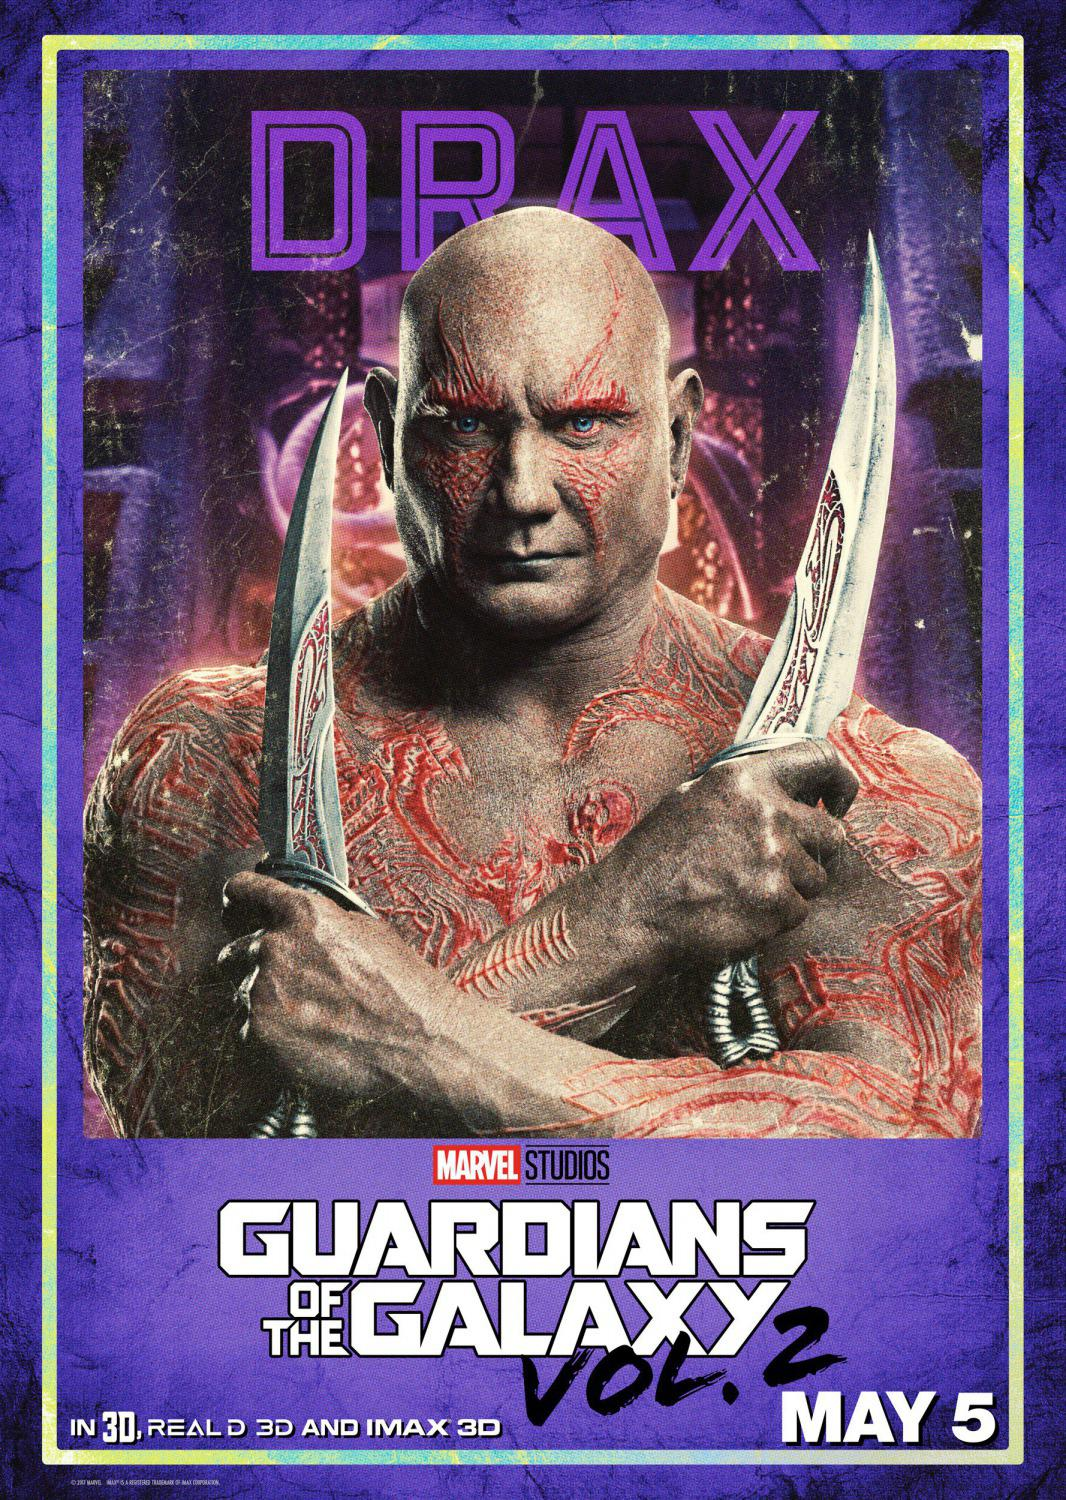 Guardians of the Galaxy vol two - Guardiani della Galassia 2 - Drax